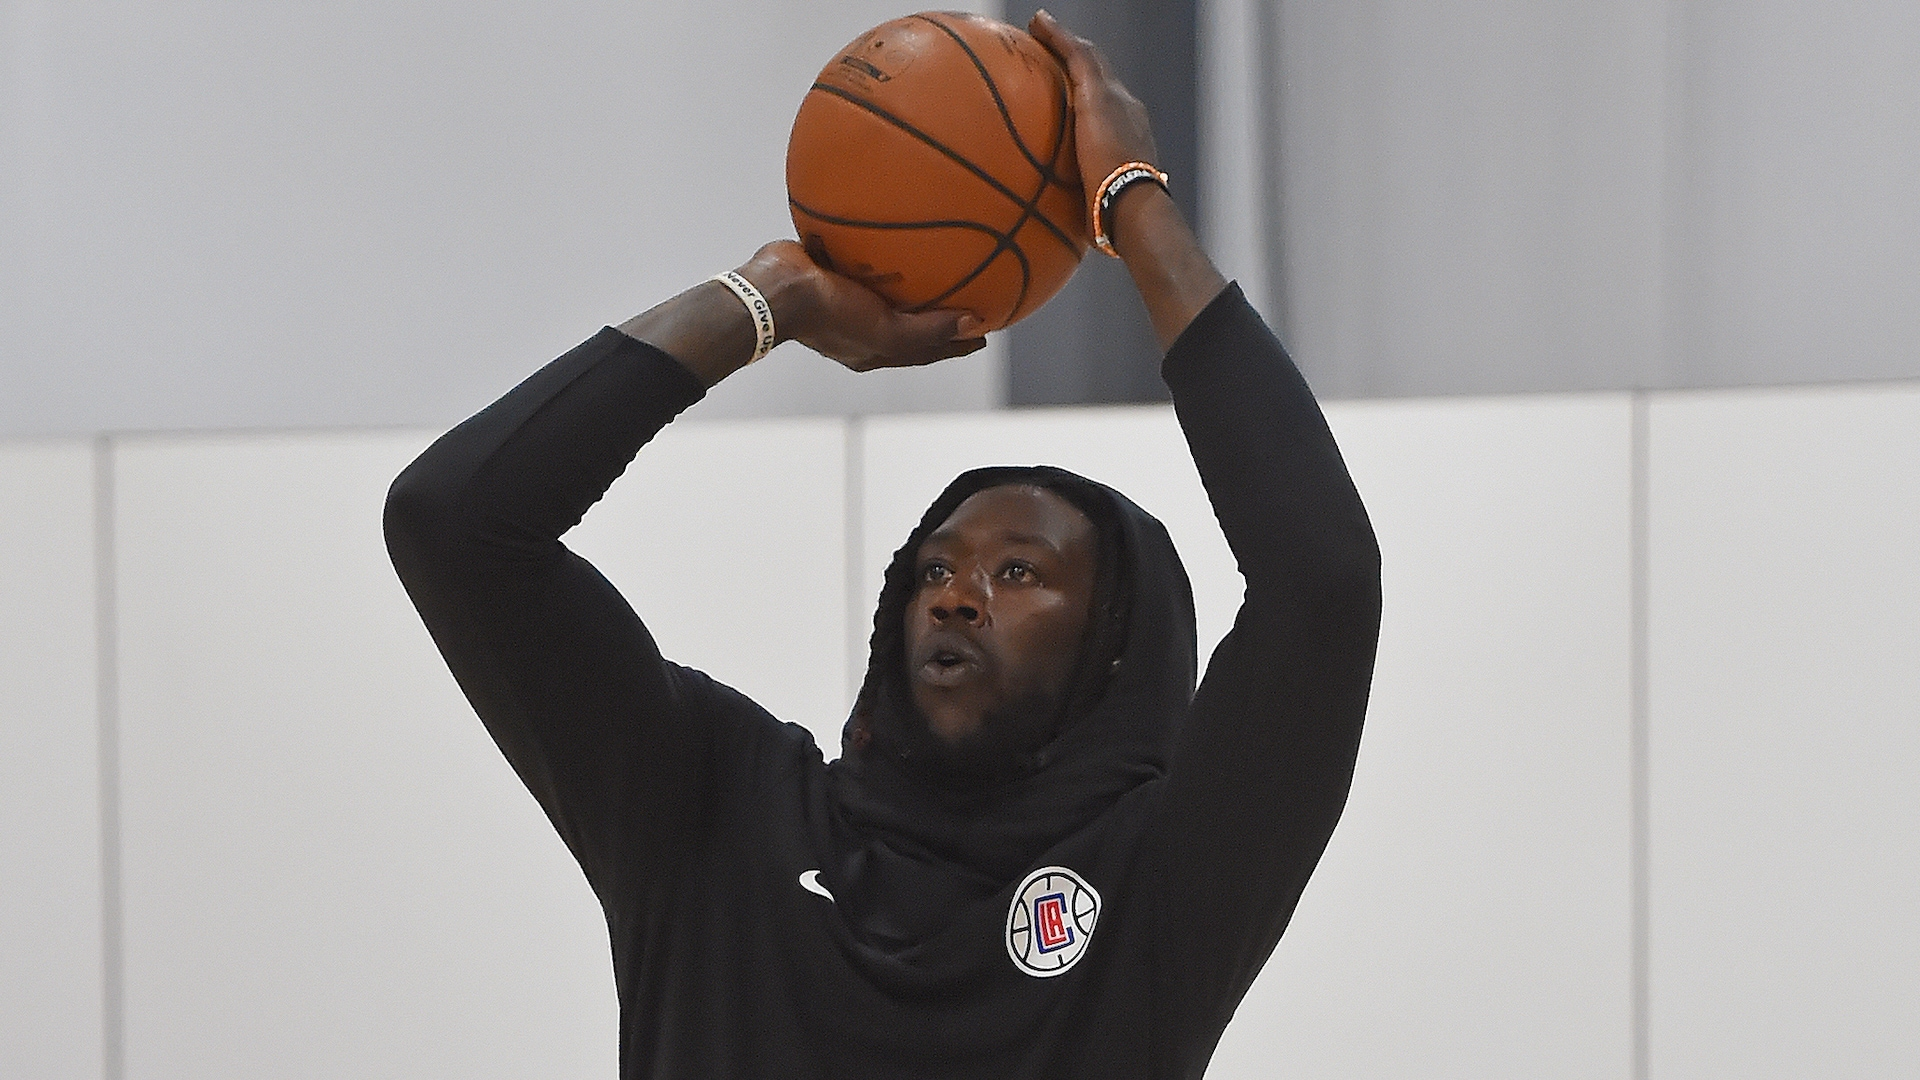 Clippers' Montrezl Harrell posts he has returned to NBA campus